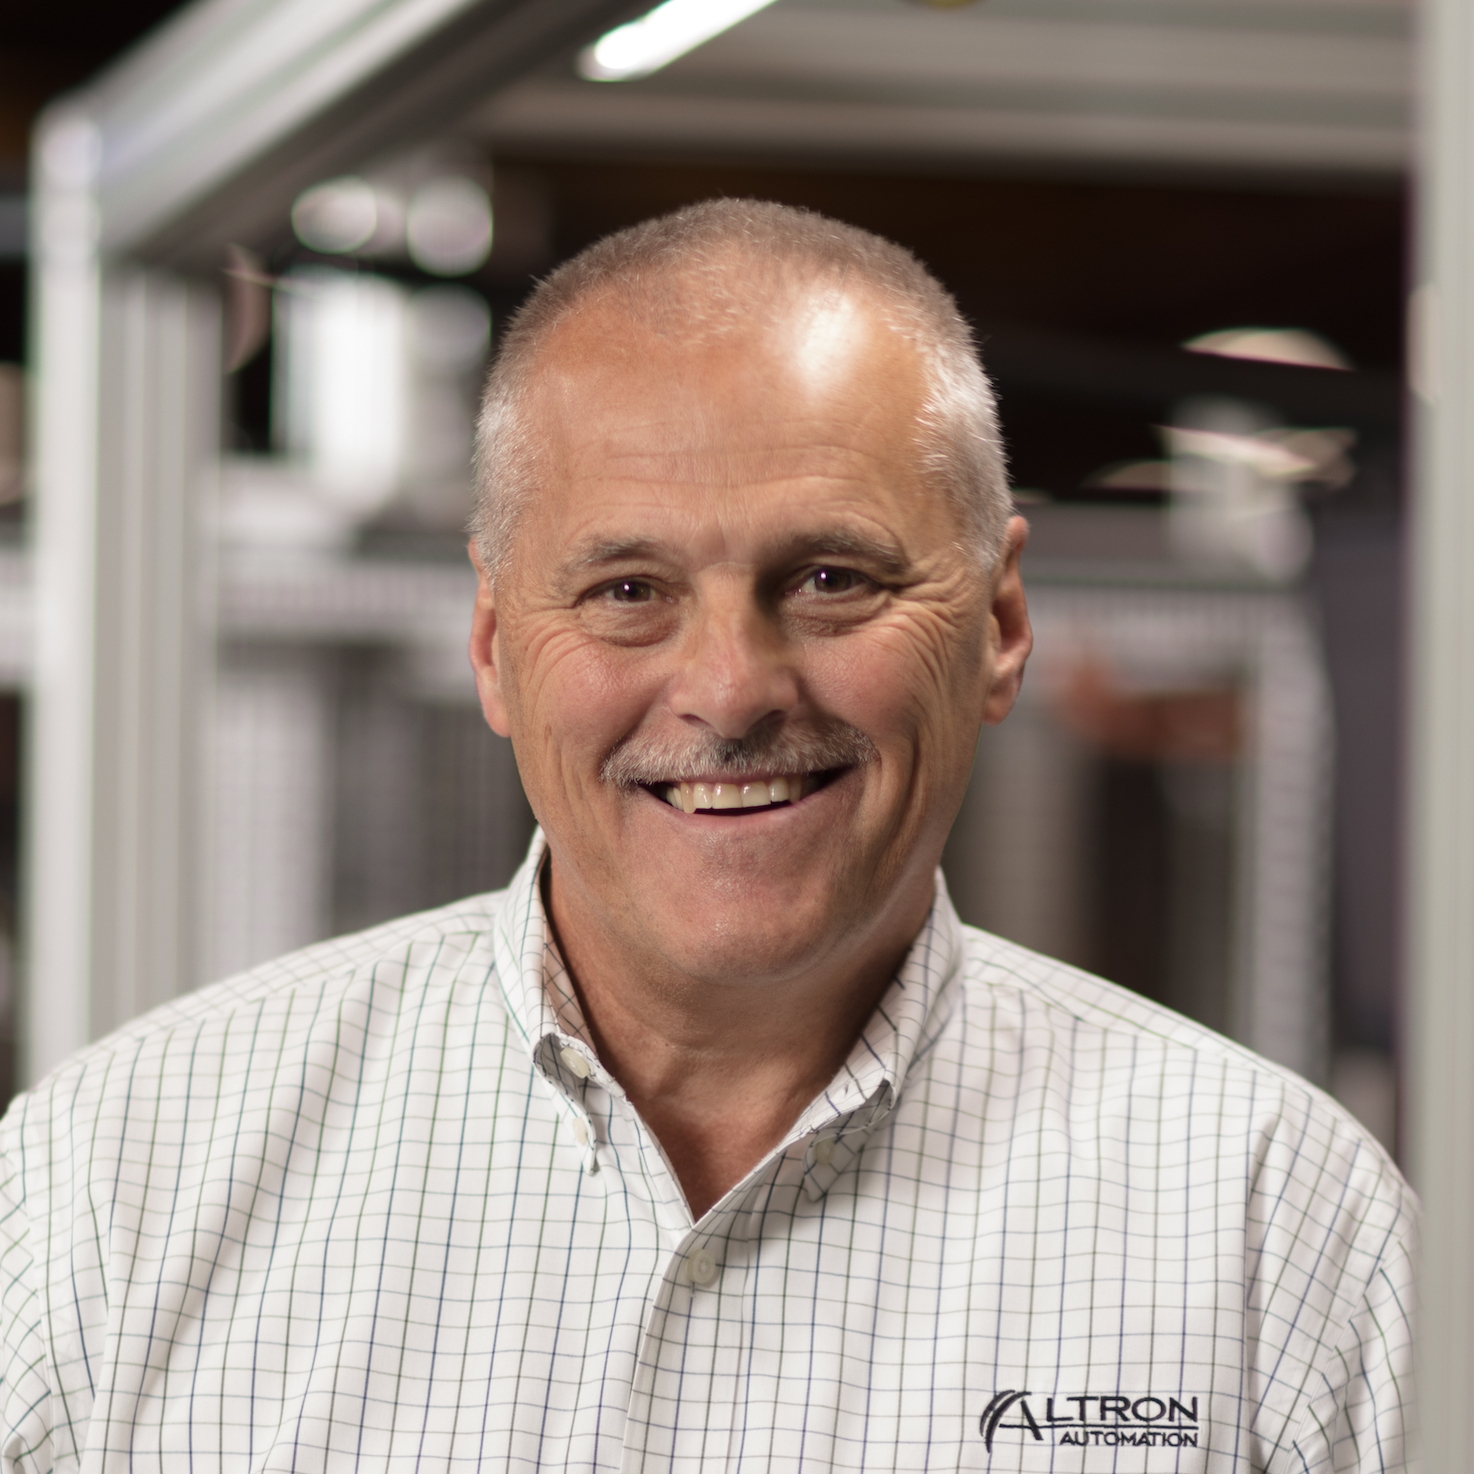 Ron McNees - President   As one of the founders of Altron Automation and someone who has been in the design and build industry for 35 years, Ron is passionate about this business. He is committed to continuous improvement as an employer of choice and as a supplier to our customers. Ron's dedication can be attributed to his desire to meet future challenges with creative and practical solutions for years to come.